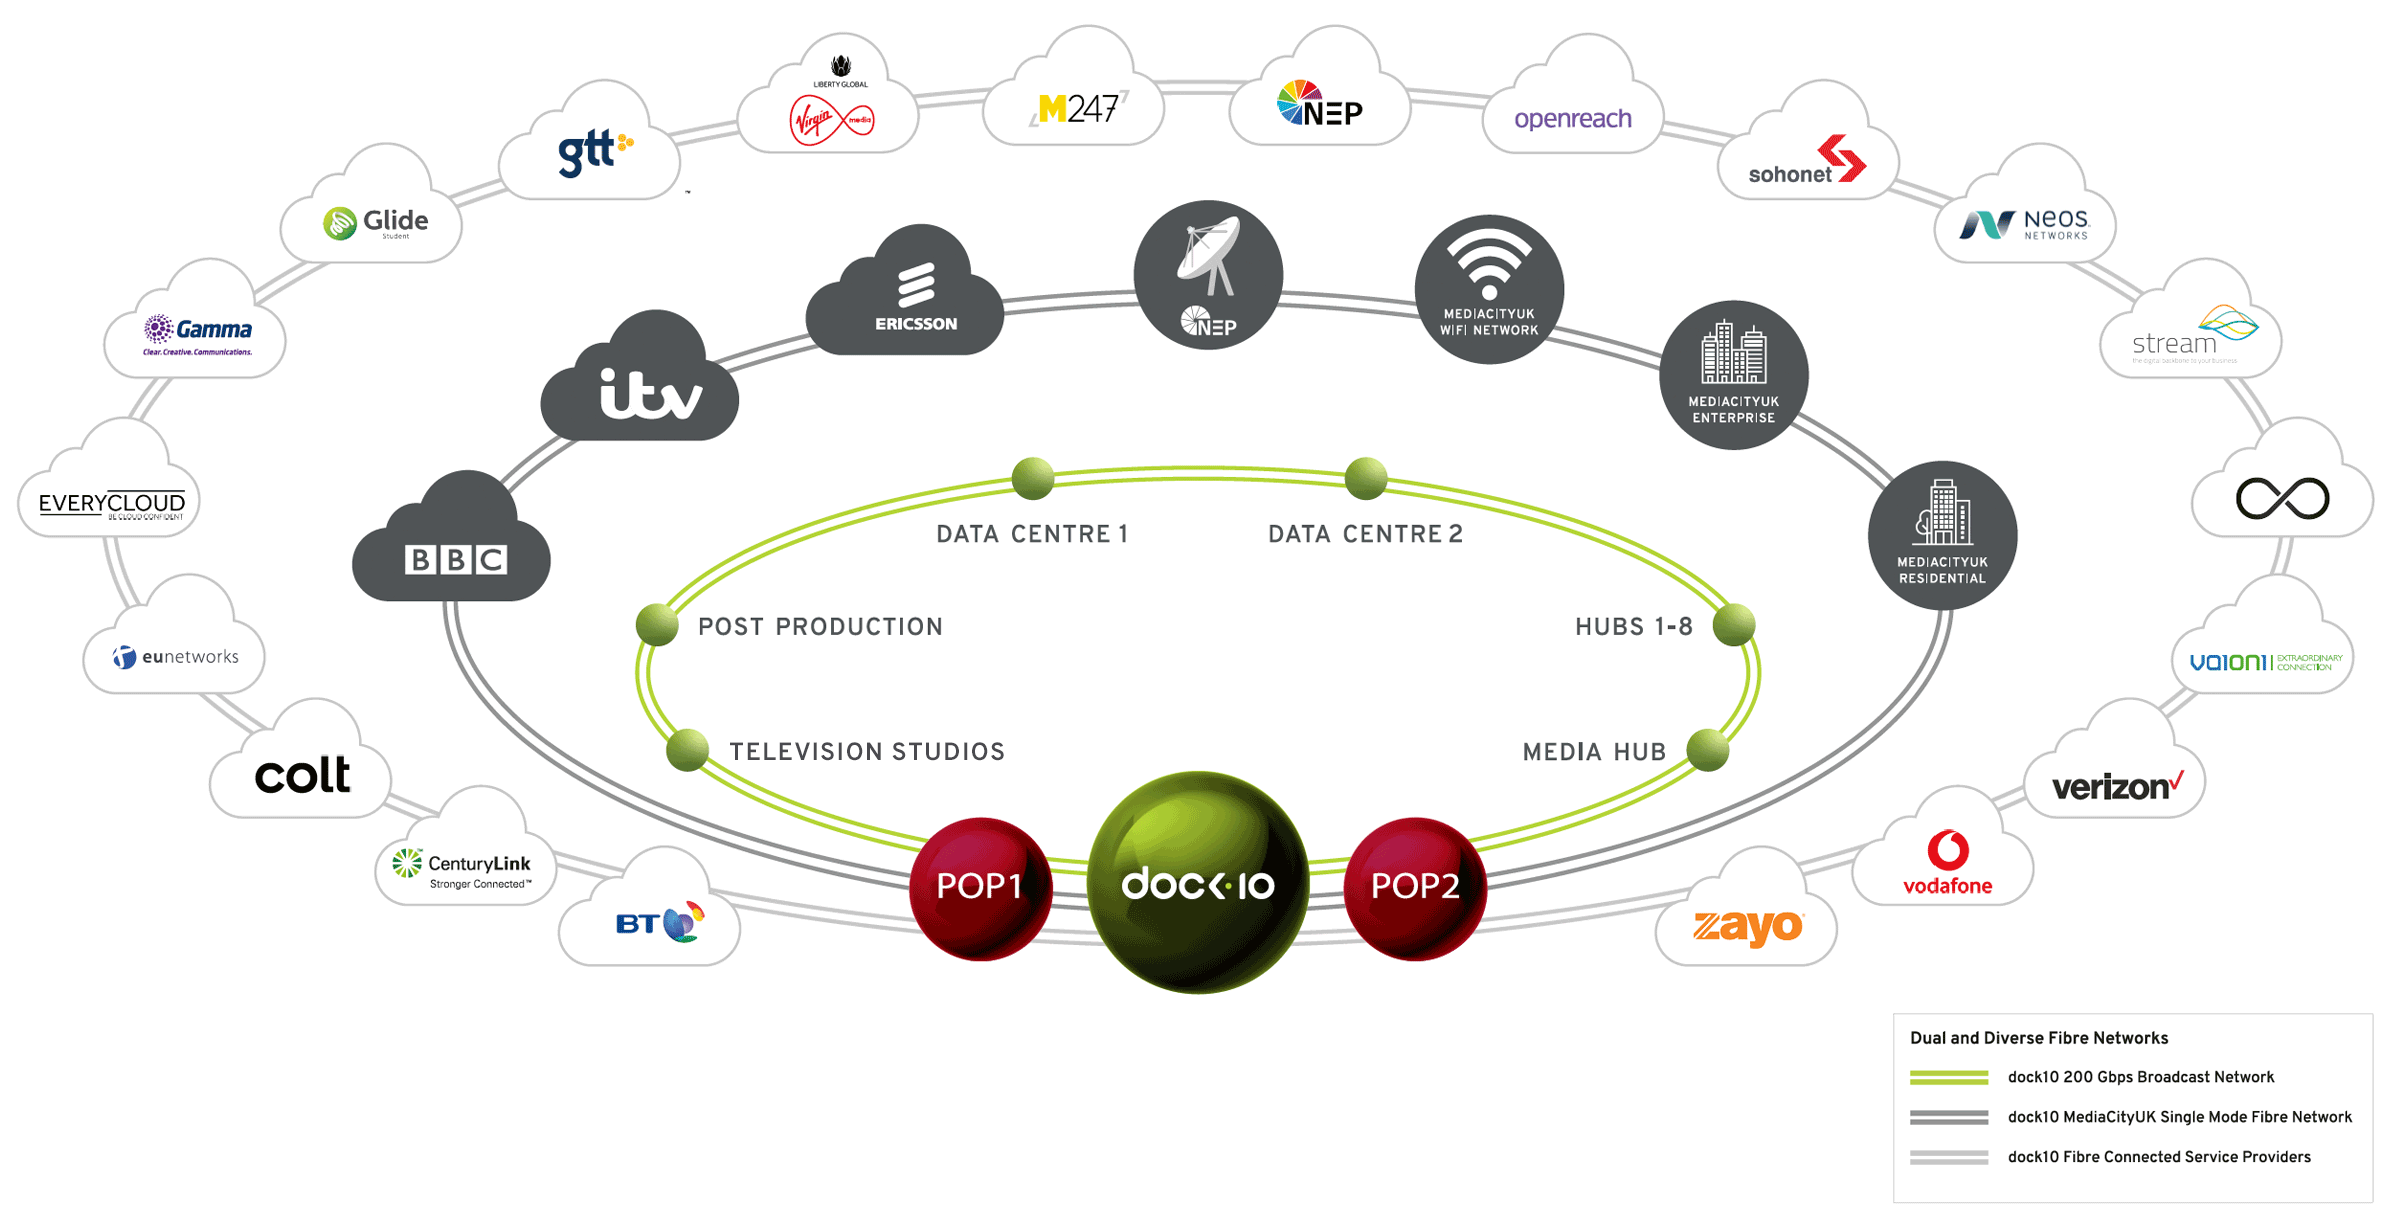 dock10 Network Diagram